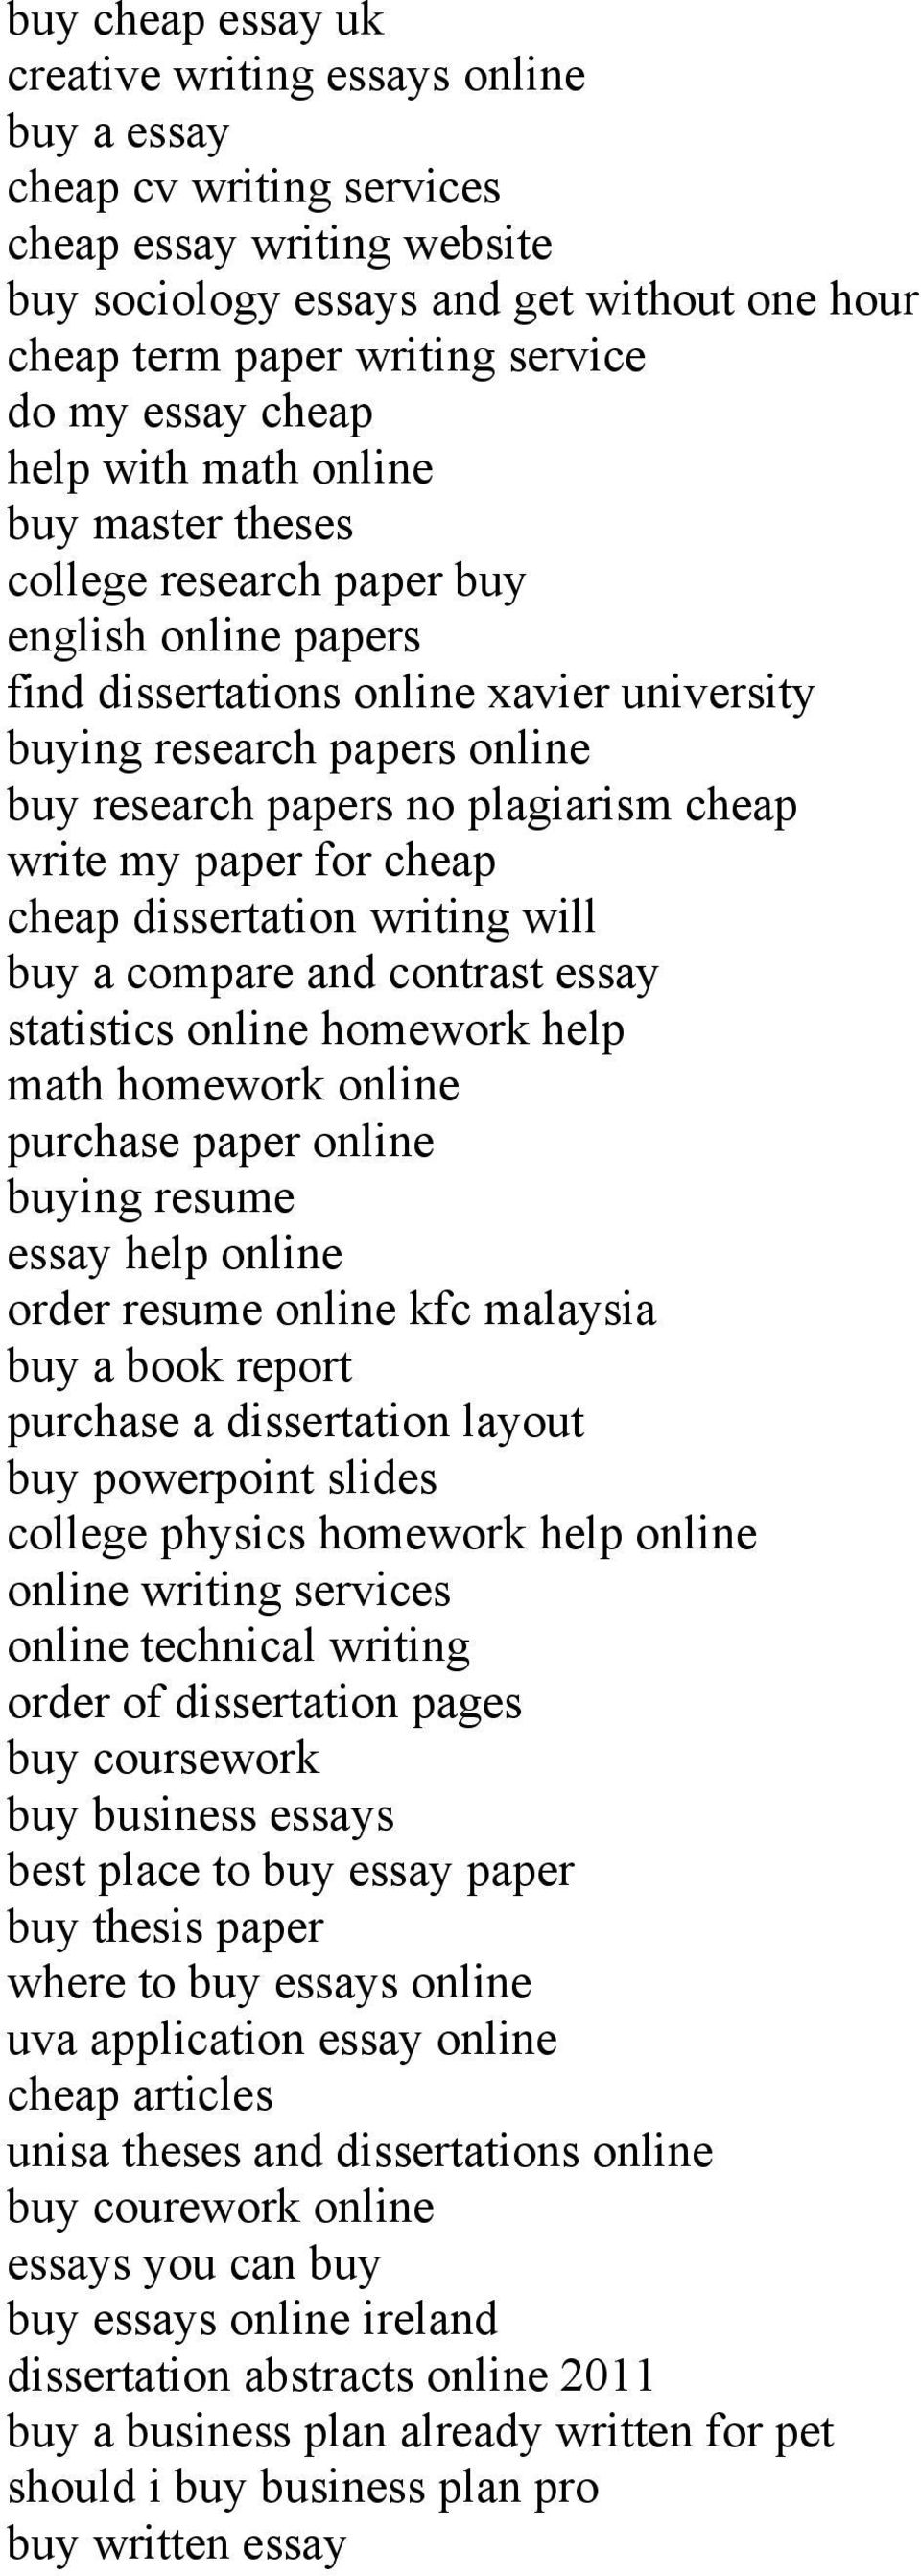 no plagiarism cheap write my paper for cheap cheap dissertation writing will buy a compare and contrast essay statistics online homework help math homework online purchase paper online buying resume